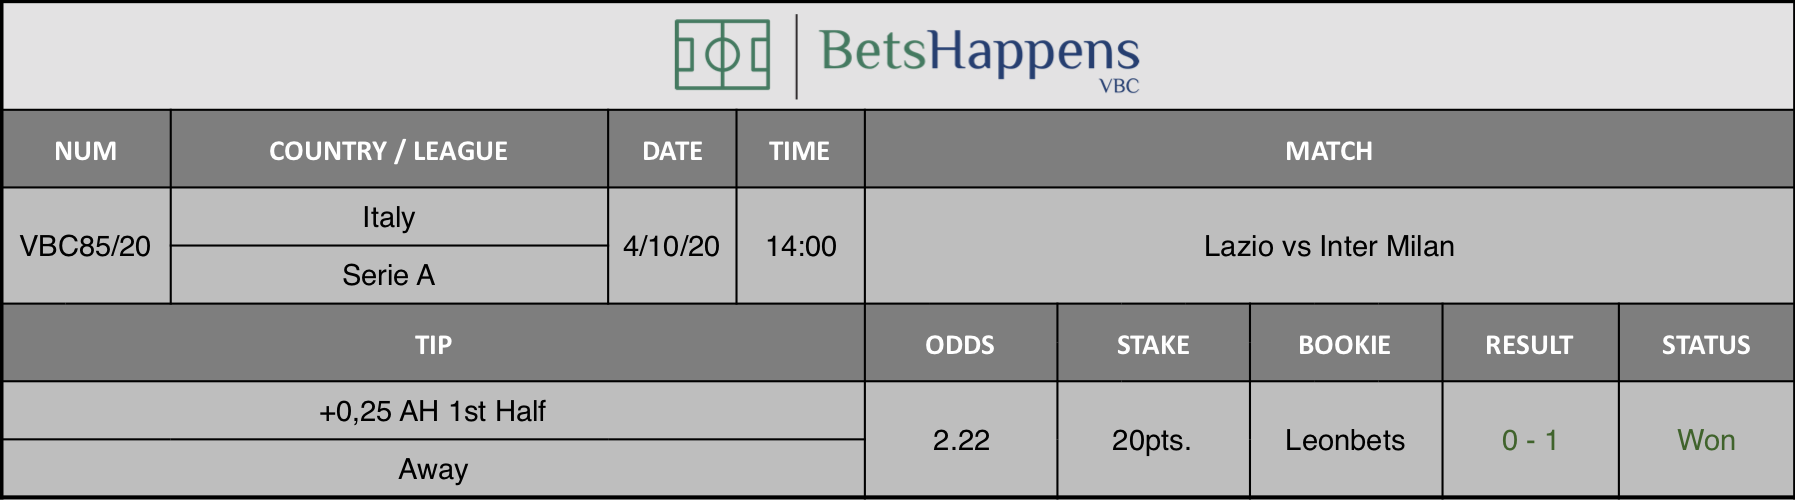 Results of our prediction for the Lazio vs Inter Milan match in which +0,25 AH 1st Half Away is recommended.